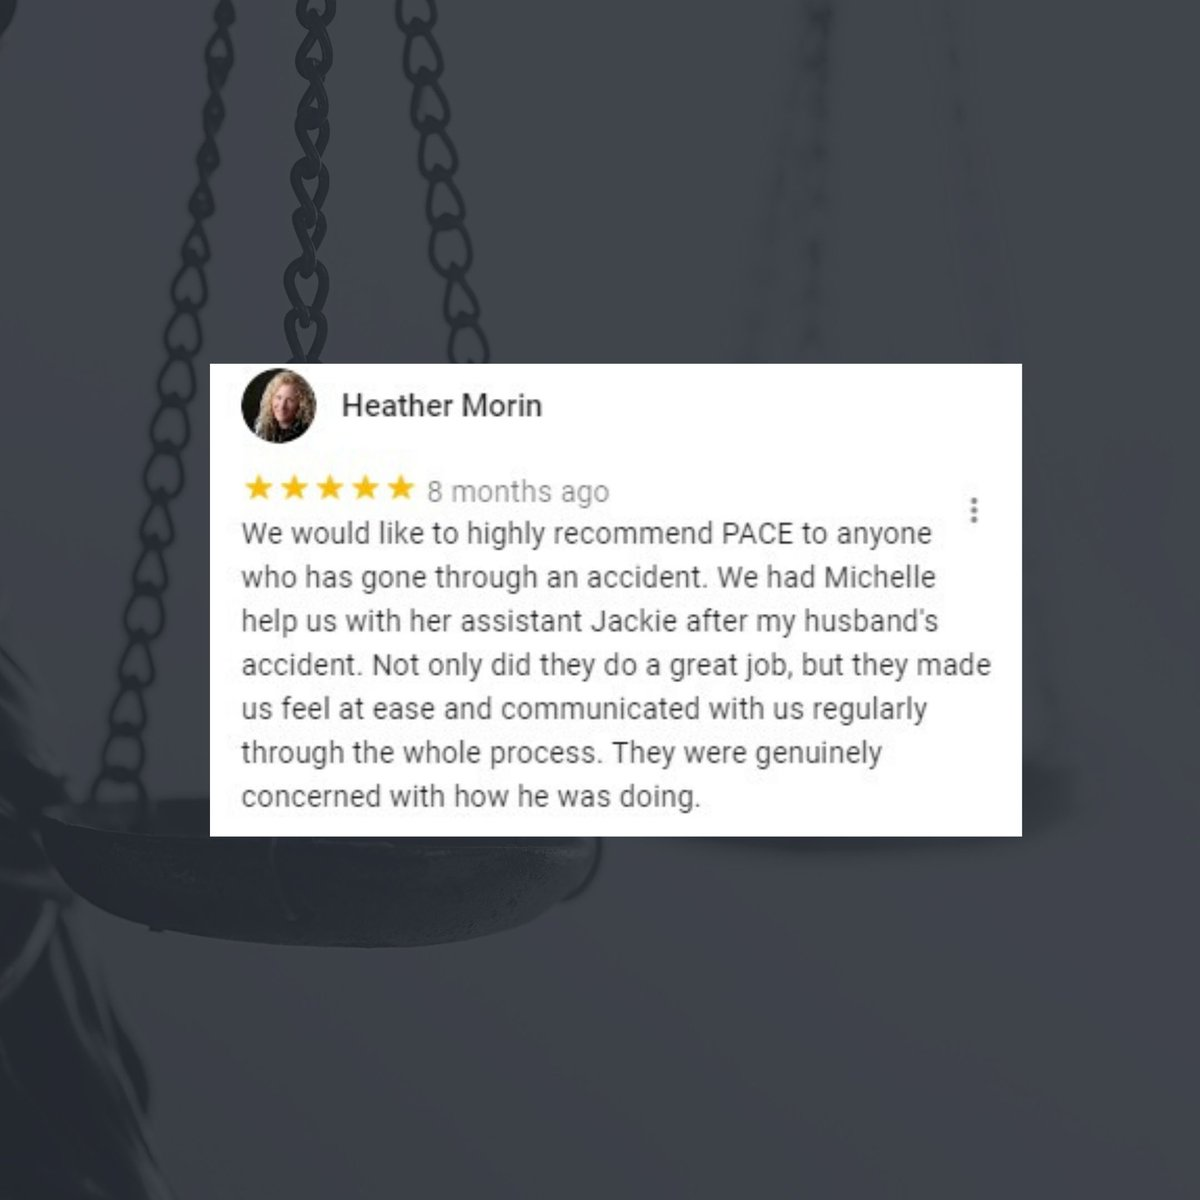 Thank you, Heather, it was our pleasure representing you. We know navigating a personal injury claim is no easy feat. Contact our experienced team of personal injury lawyers and see for yourself how our client first approach makes a world of a difference. https://t.co/kJrclk8tWv https://t.co/U4IG31cSKj